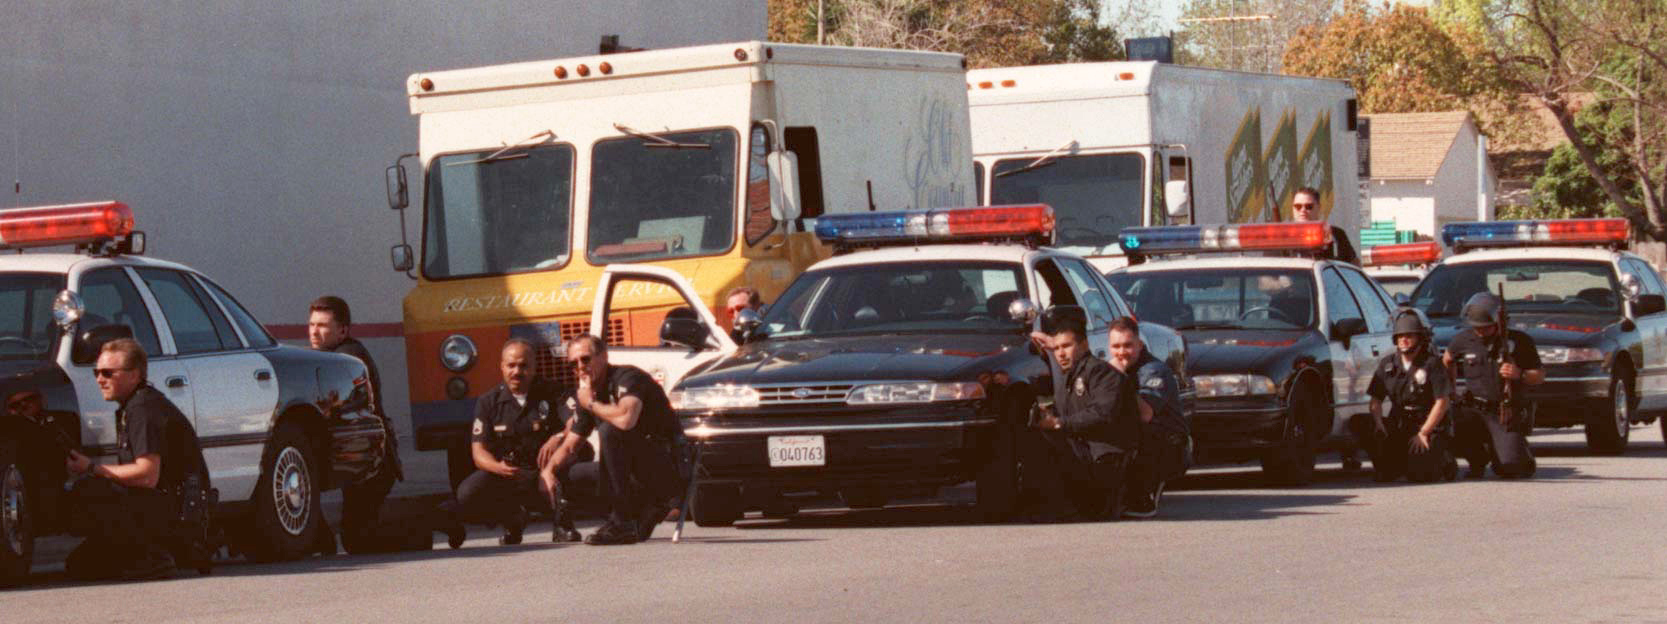 . Armed with automatic weapons and body armor, two masked men robbed a North Hollywood bank Friday, February 28, 1997, and then were killed trying to blast their way to freedom, spraying bullets into houses and cars as the world witnessed it live on television  (Photo by Gene Blevins/Los Angeles Daily News)